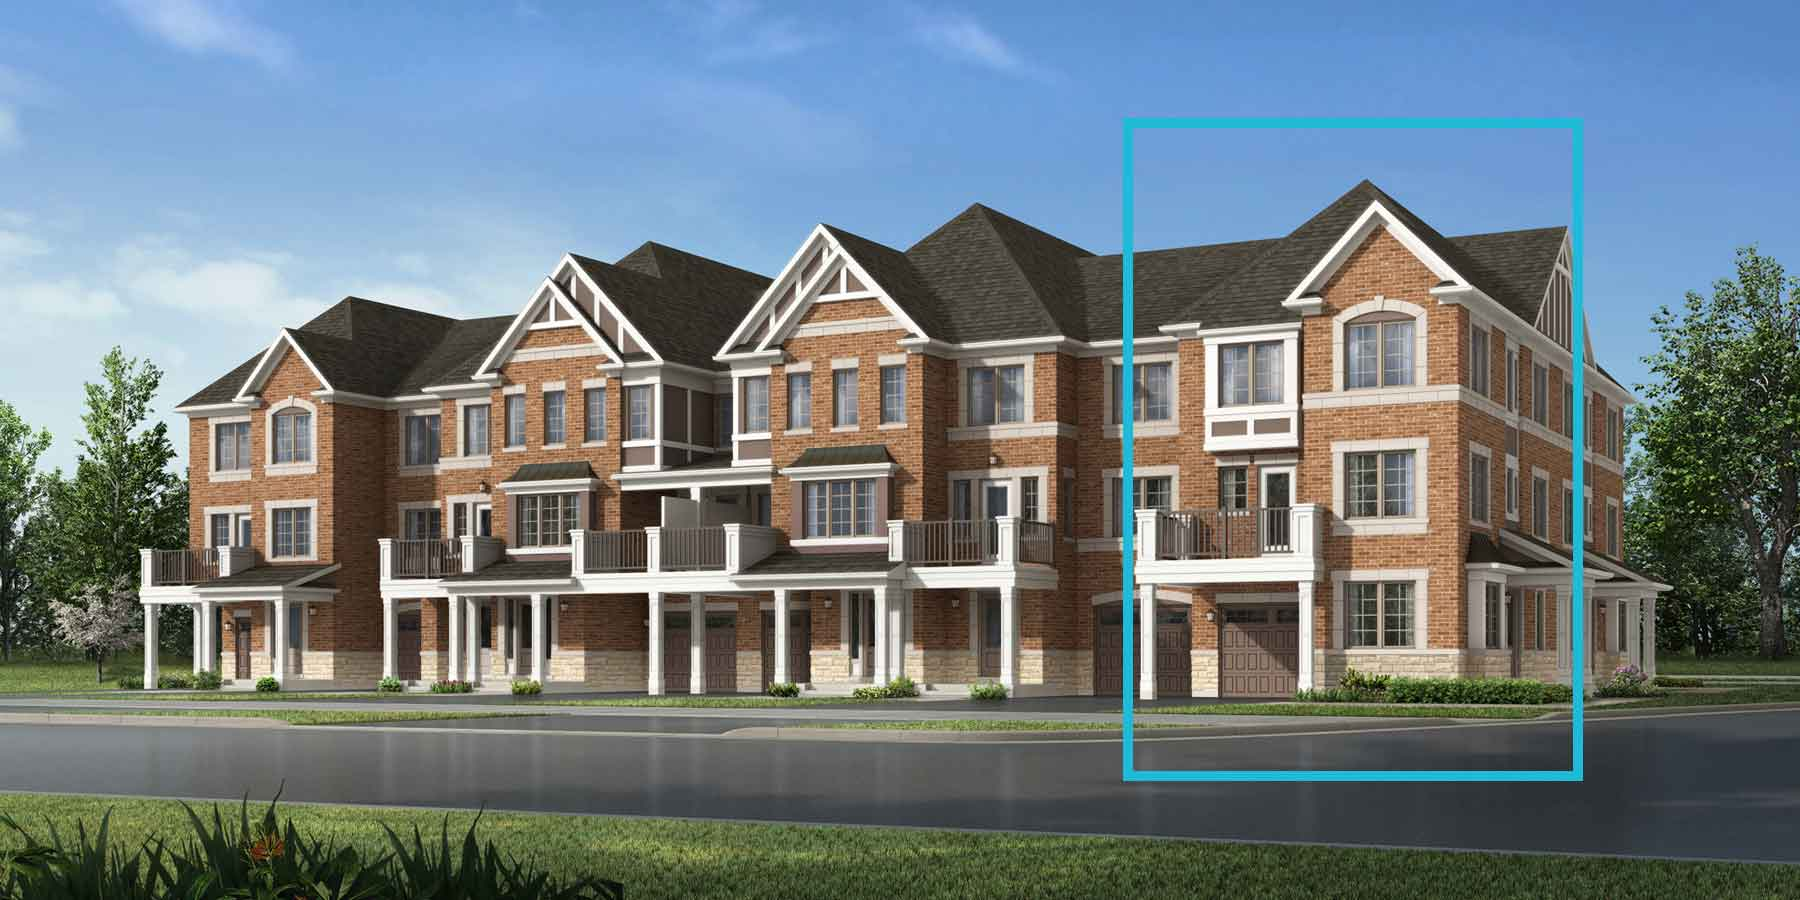 Manning Corner Plan TownHomes at Seaton Whitevale in Pickering Ontario by Mattamy Homes